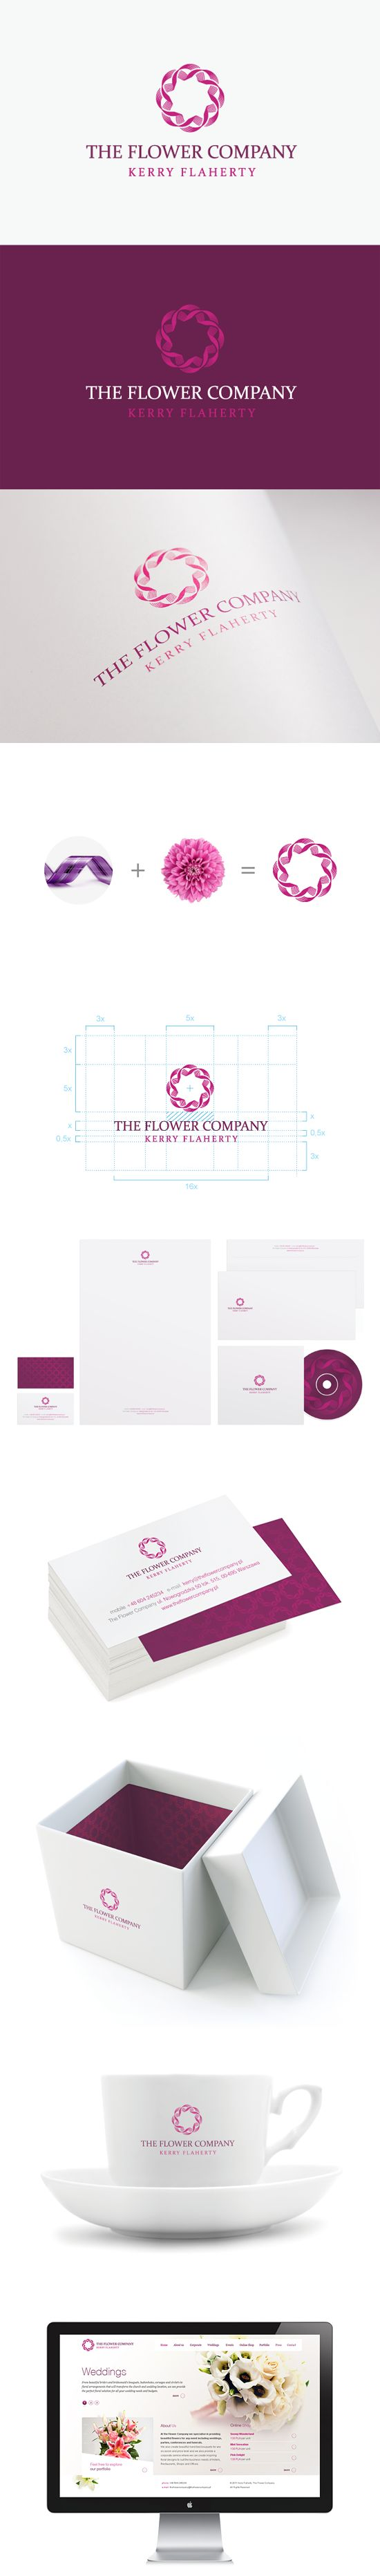 The Flower Company by kreujemy.to , via Behance. I like the design photography, a nice way to present an identity.